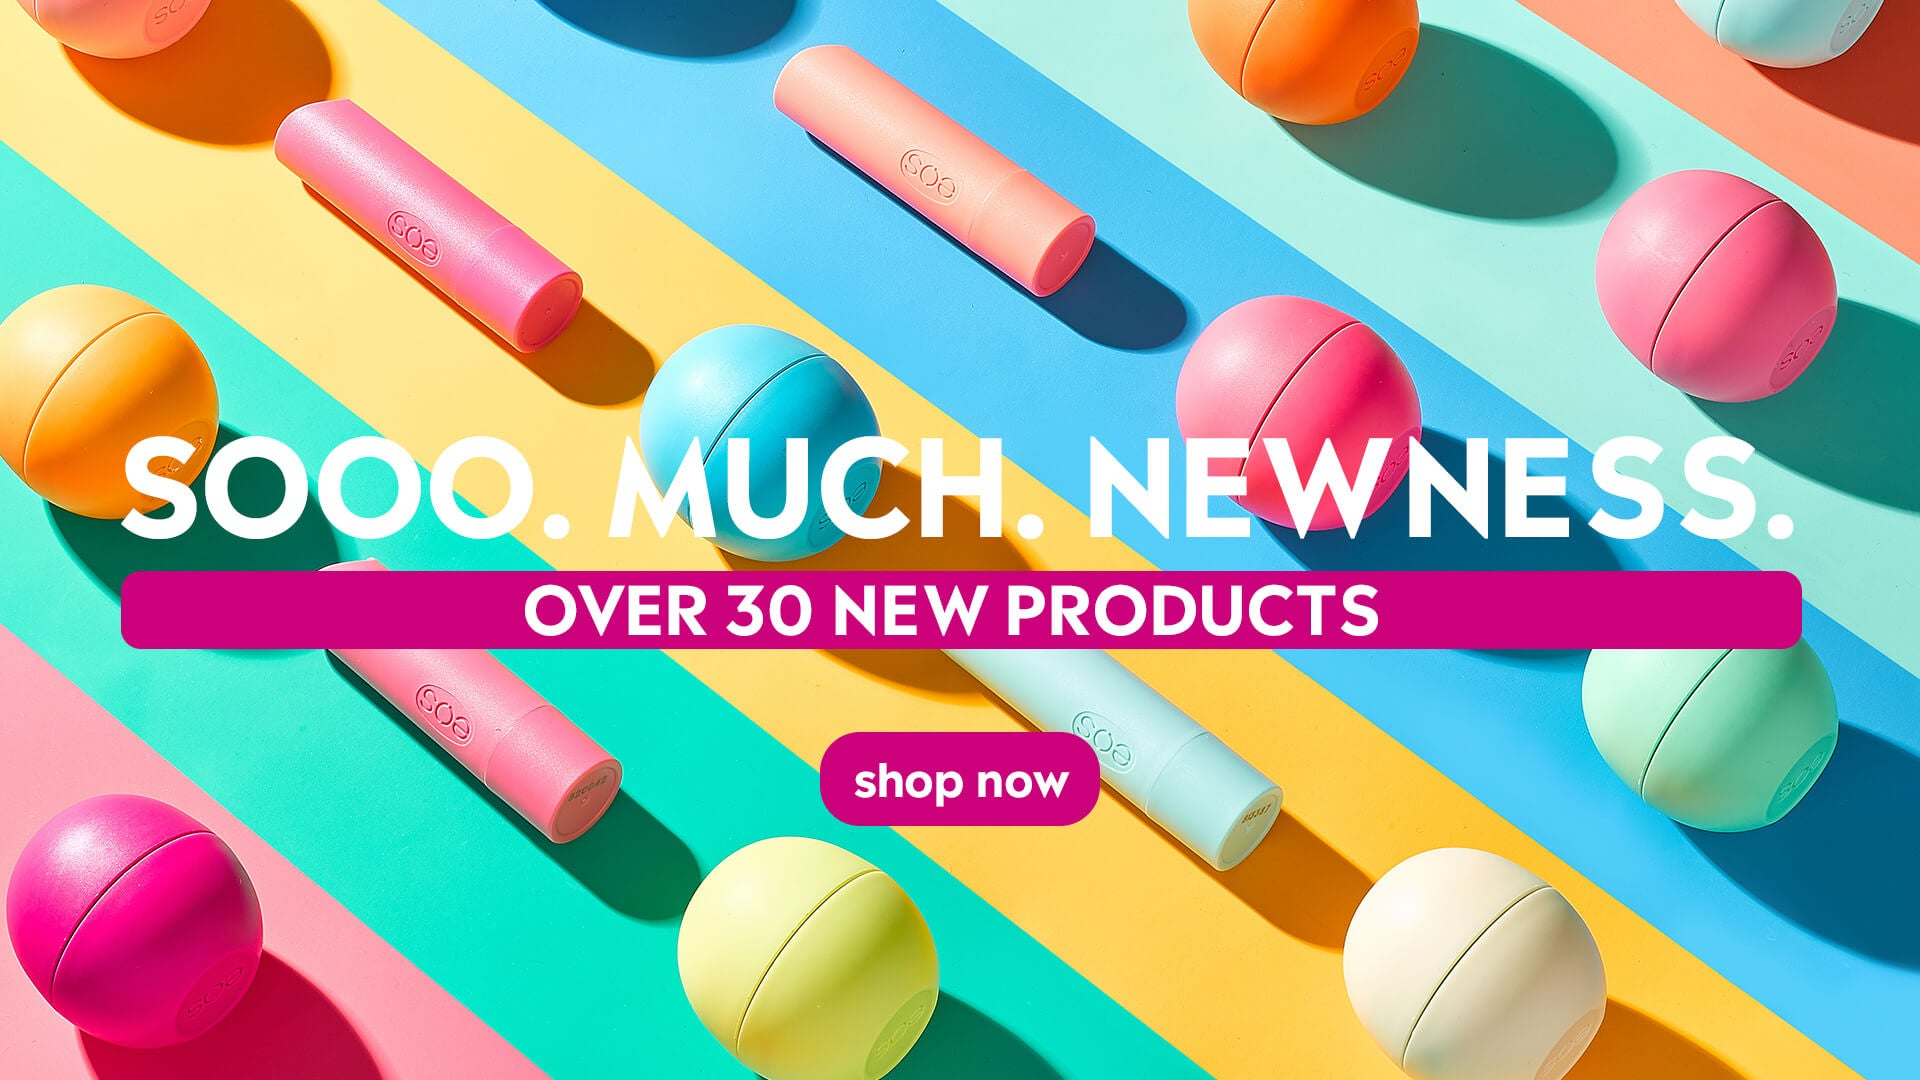 So much new. Over 30 new products!